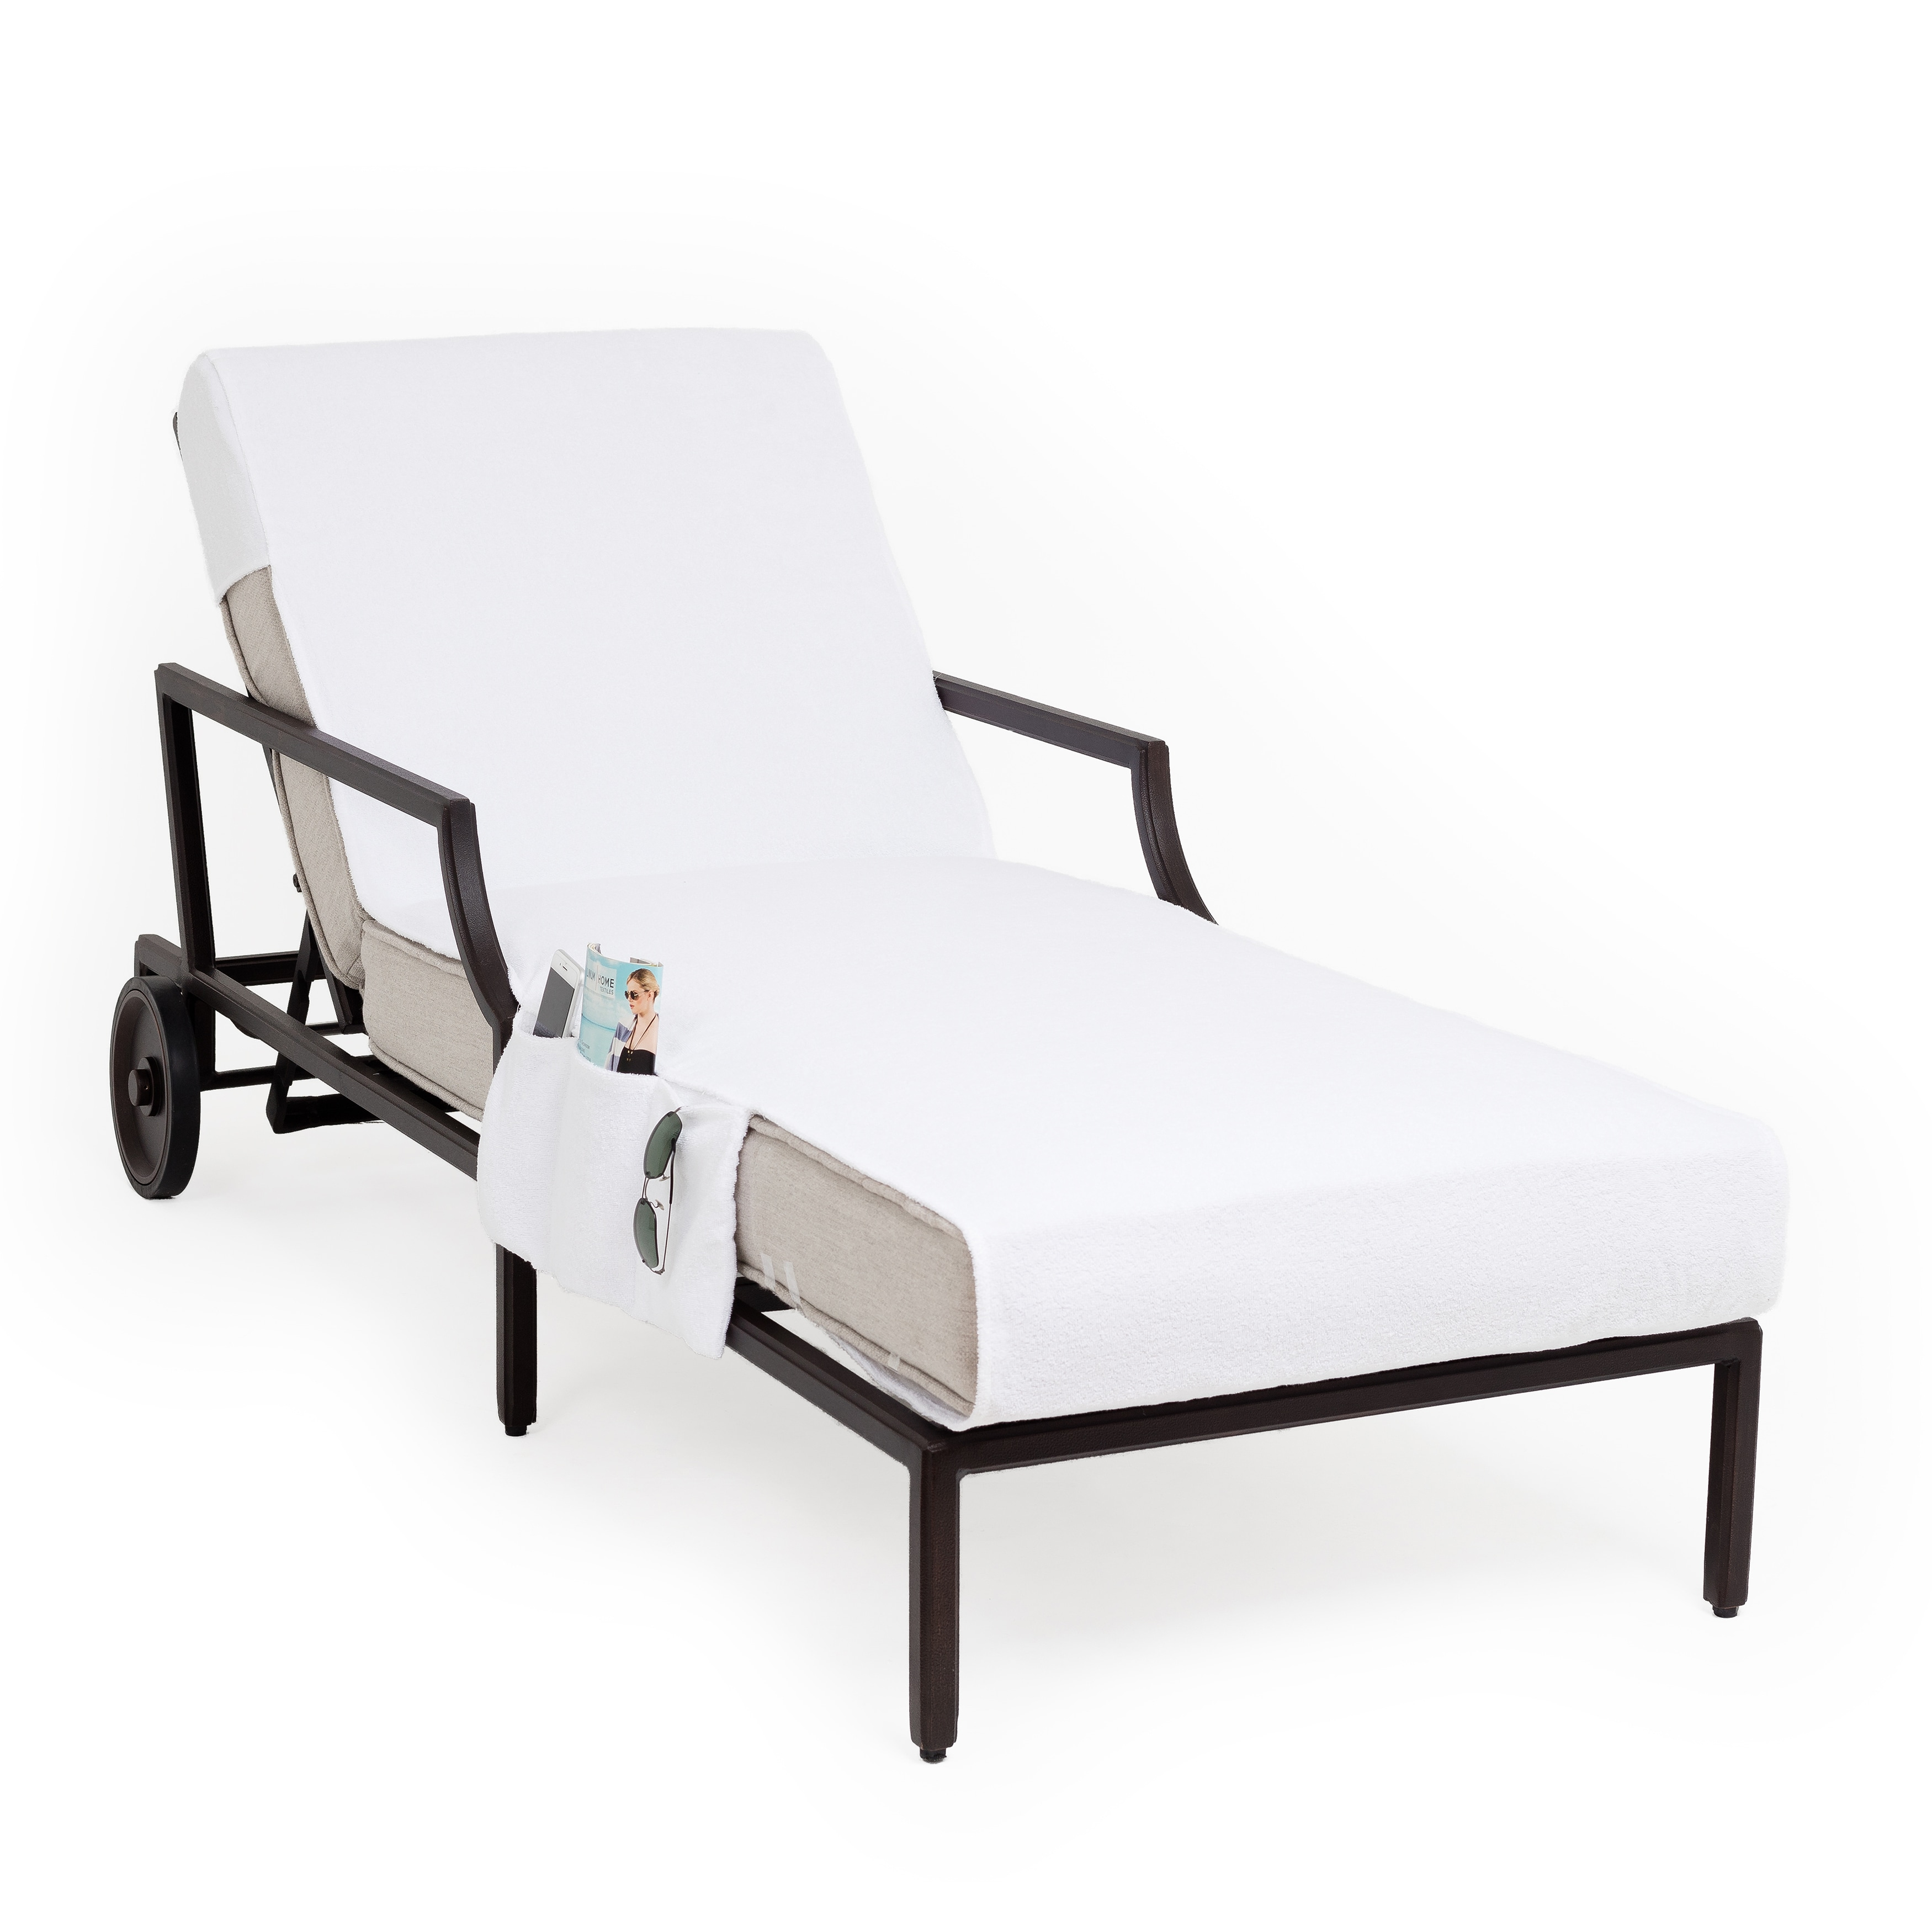 Shop Turkish Cotton Standard Chaise Lounge Chair Towel Cover With Pockets    Free Shipping On Orders Over $45   Overstock.com   6751405